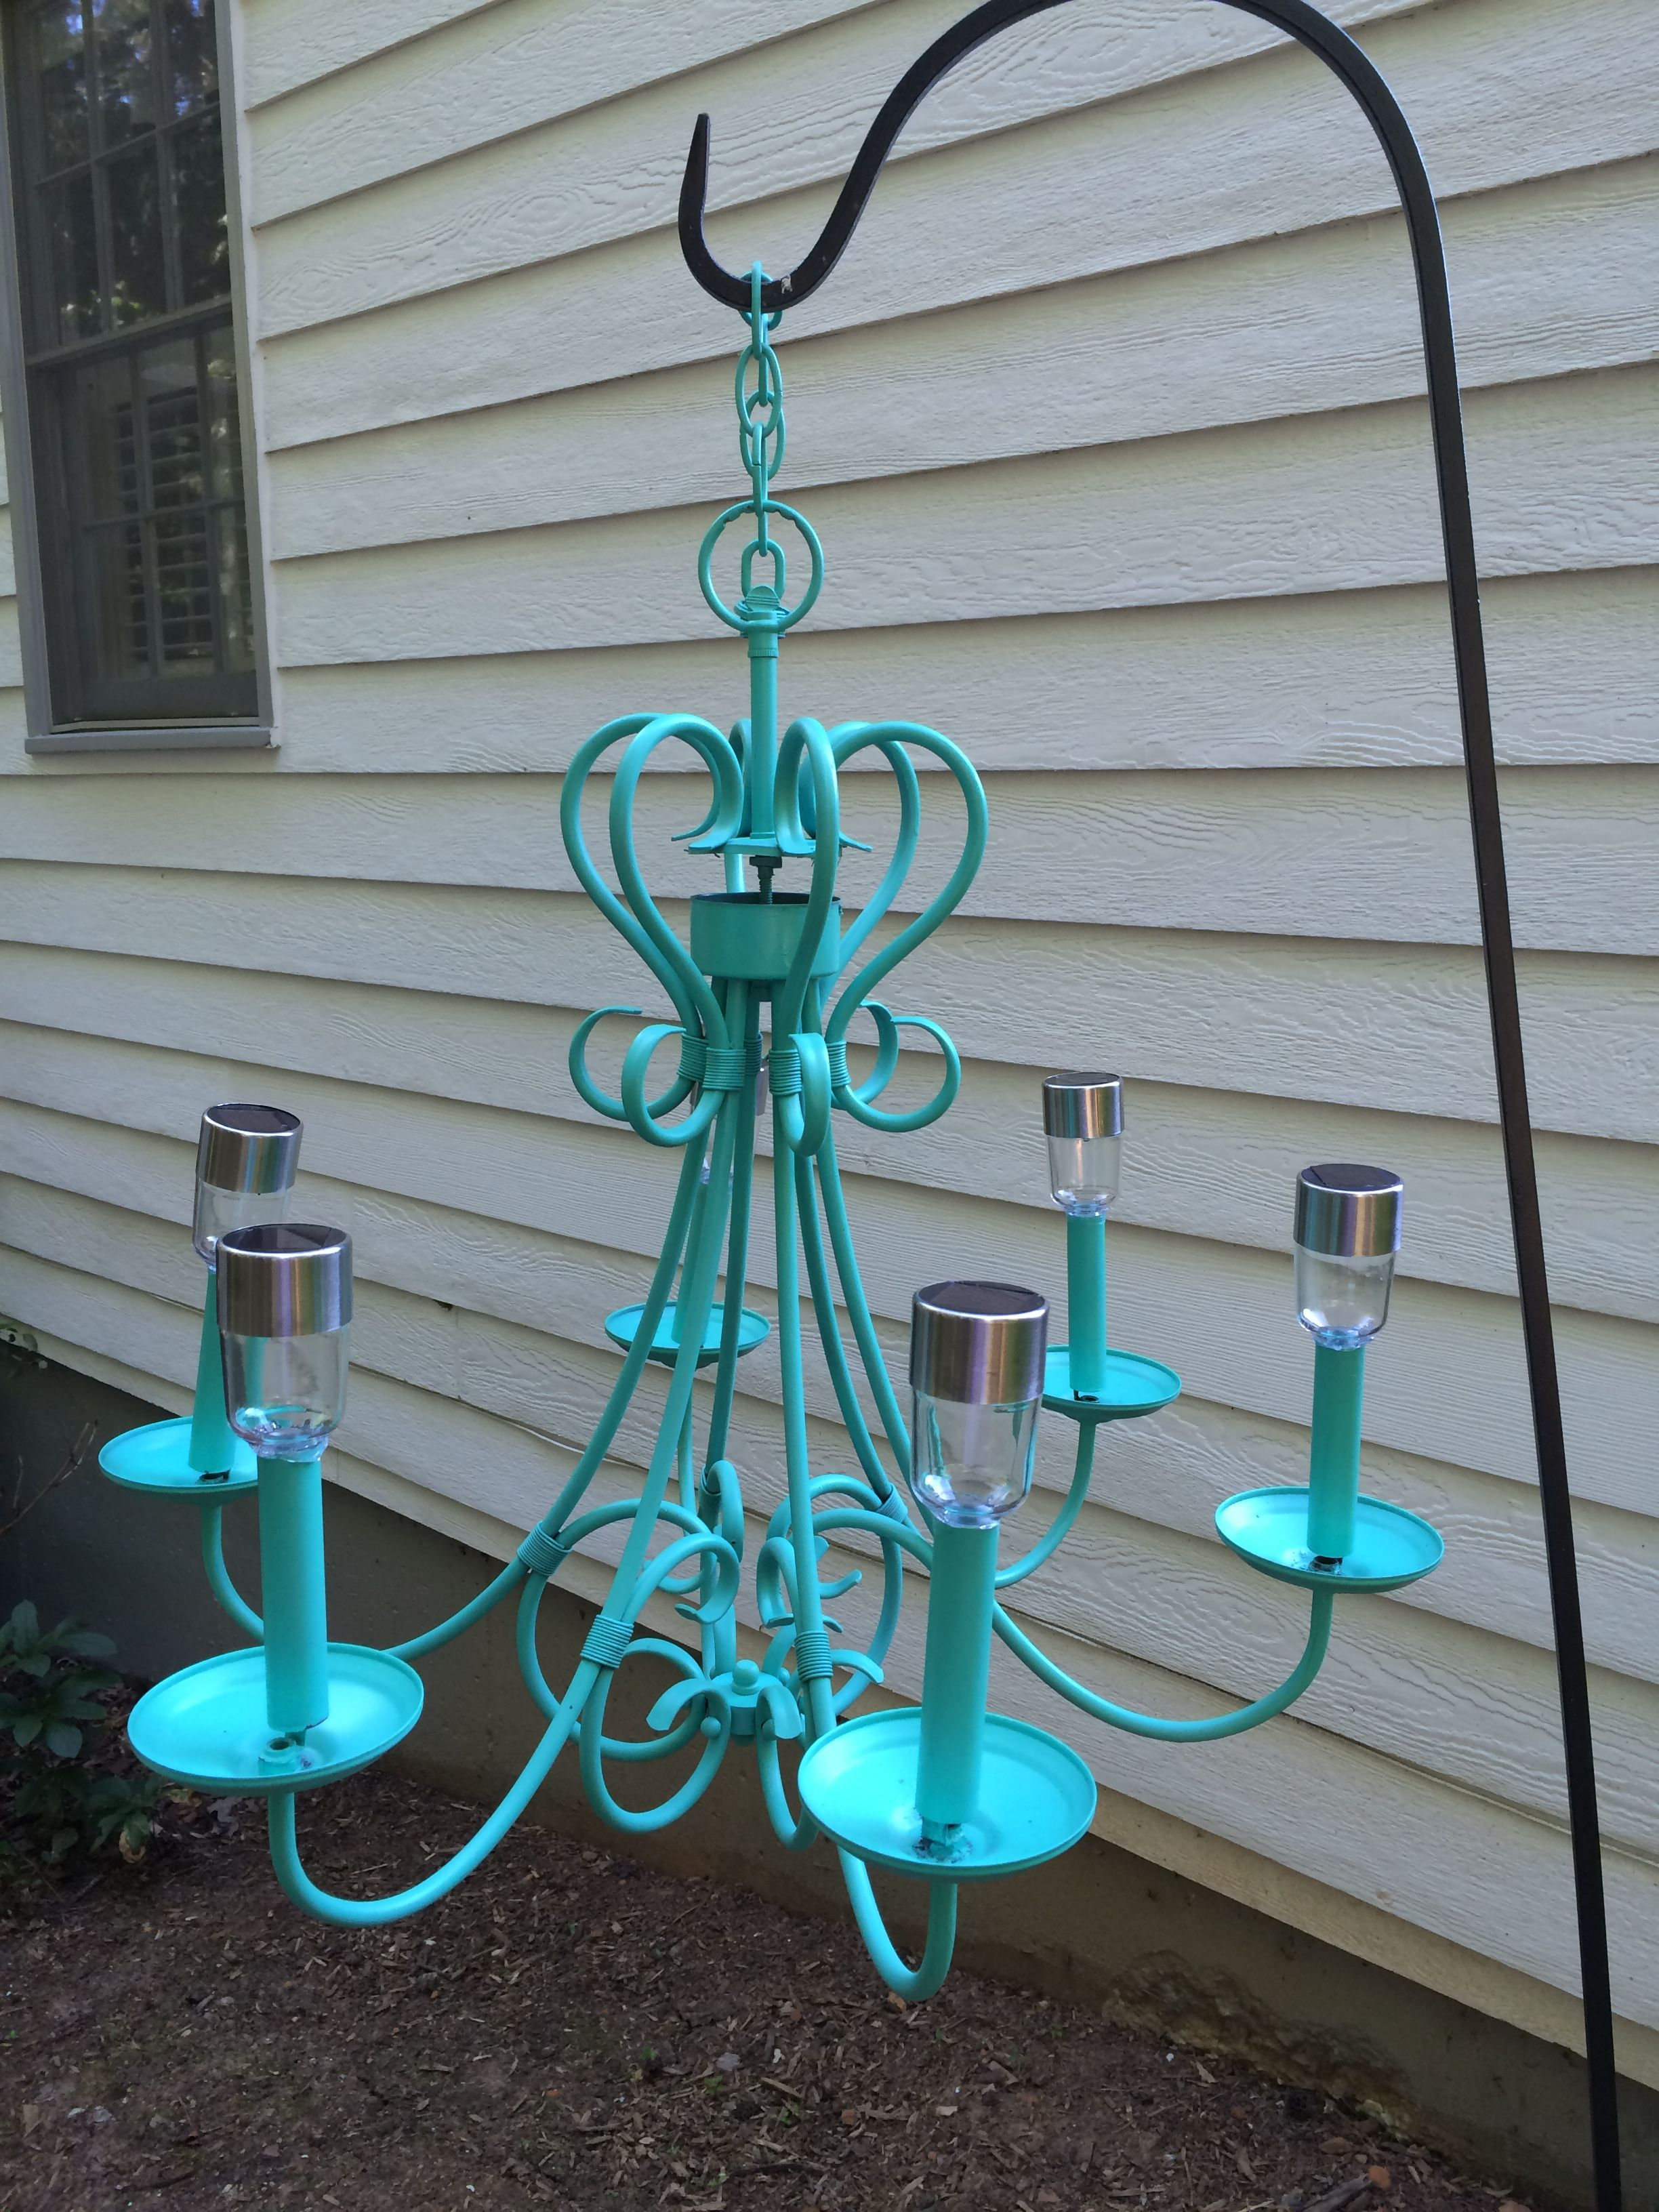 Outdoor Solar Chandelier Bought An Old Rusty Antique Store Chandelier And Repainted Glued In The Tops Of So Cheap Solar Lights Solar Chandelier Solar Lights